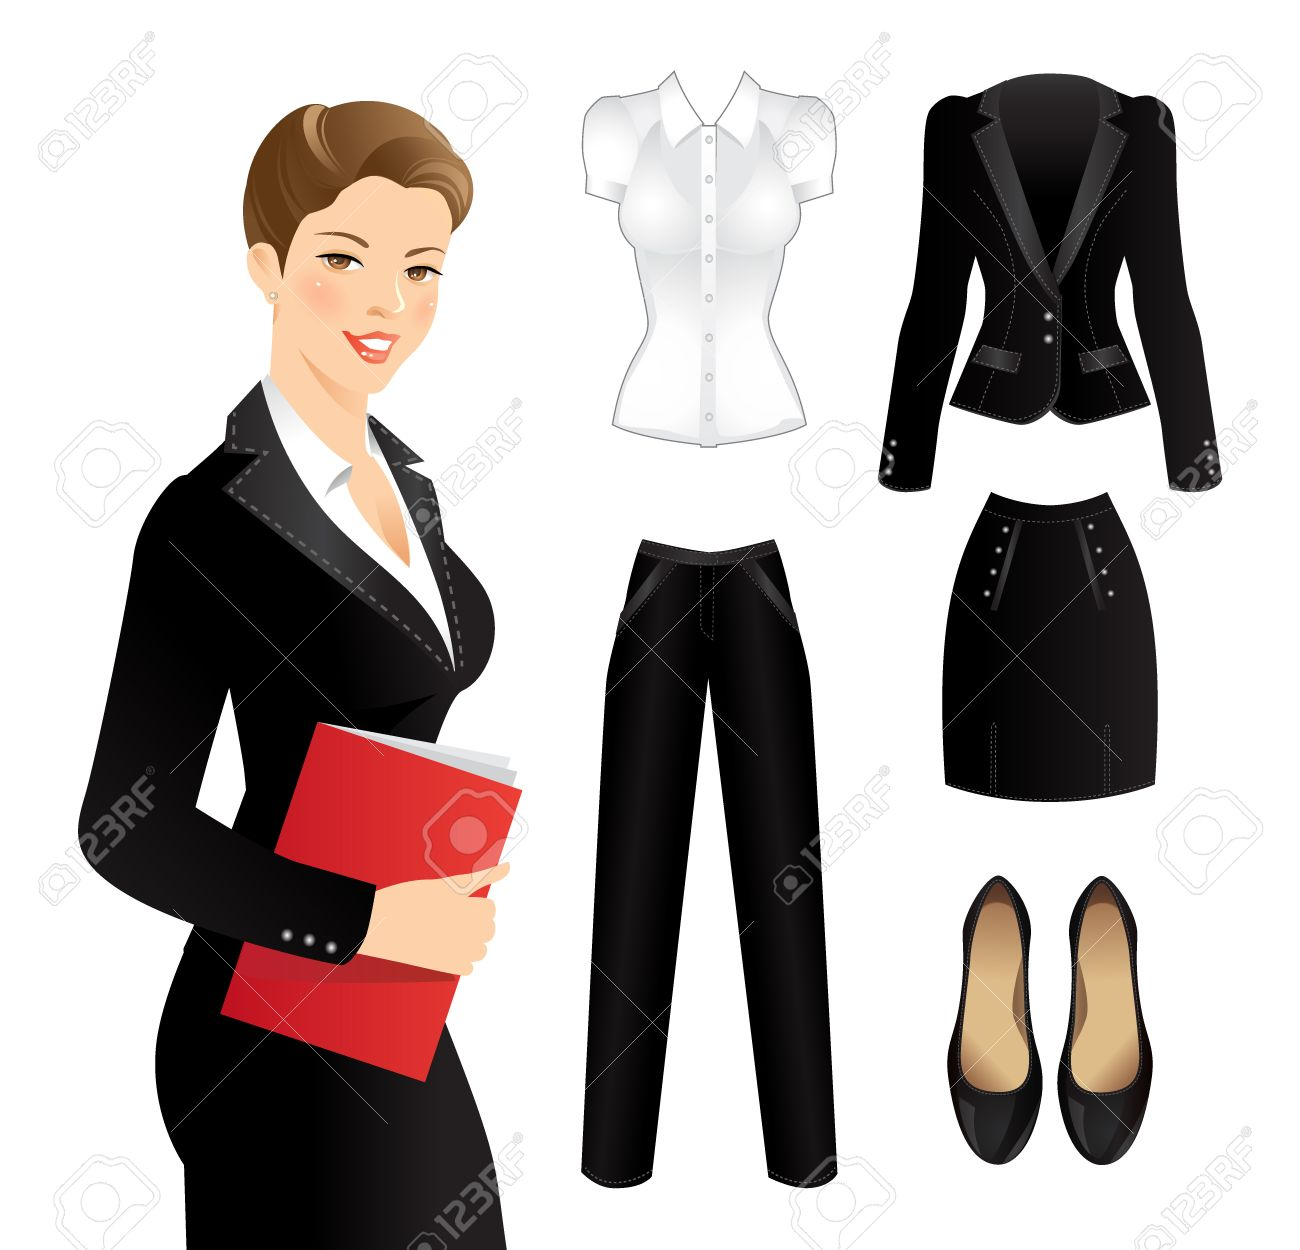 wearinspo of life business inspirational ideas copy clothes style see best street can are women spring there you in the com and real for fun pics easily office make combinations cool looks lots